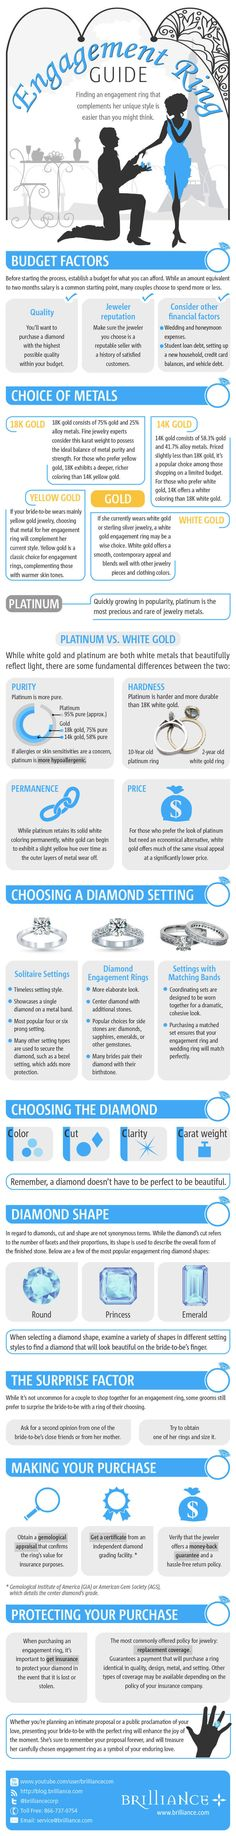 Getting ready to pop the question to that special someone? Brilliance has got your back with this helpful infographic on how to find that engagement ring that complements her unique style.